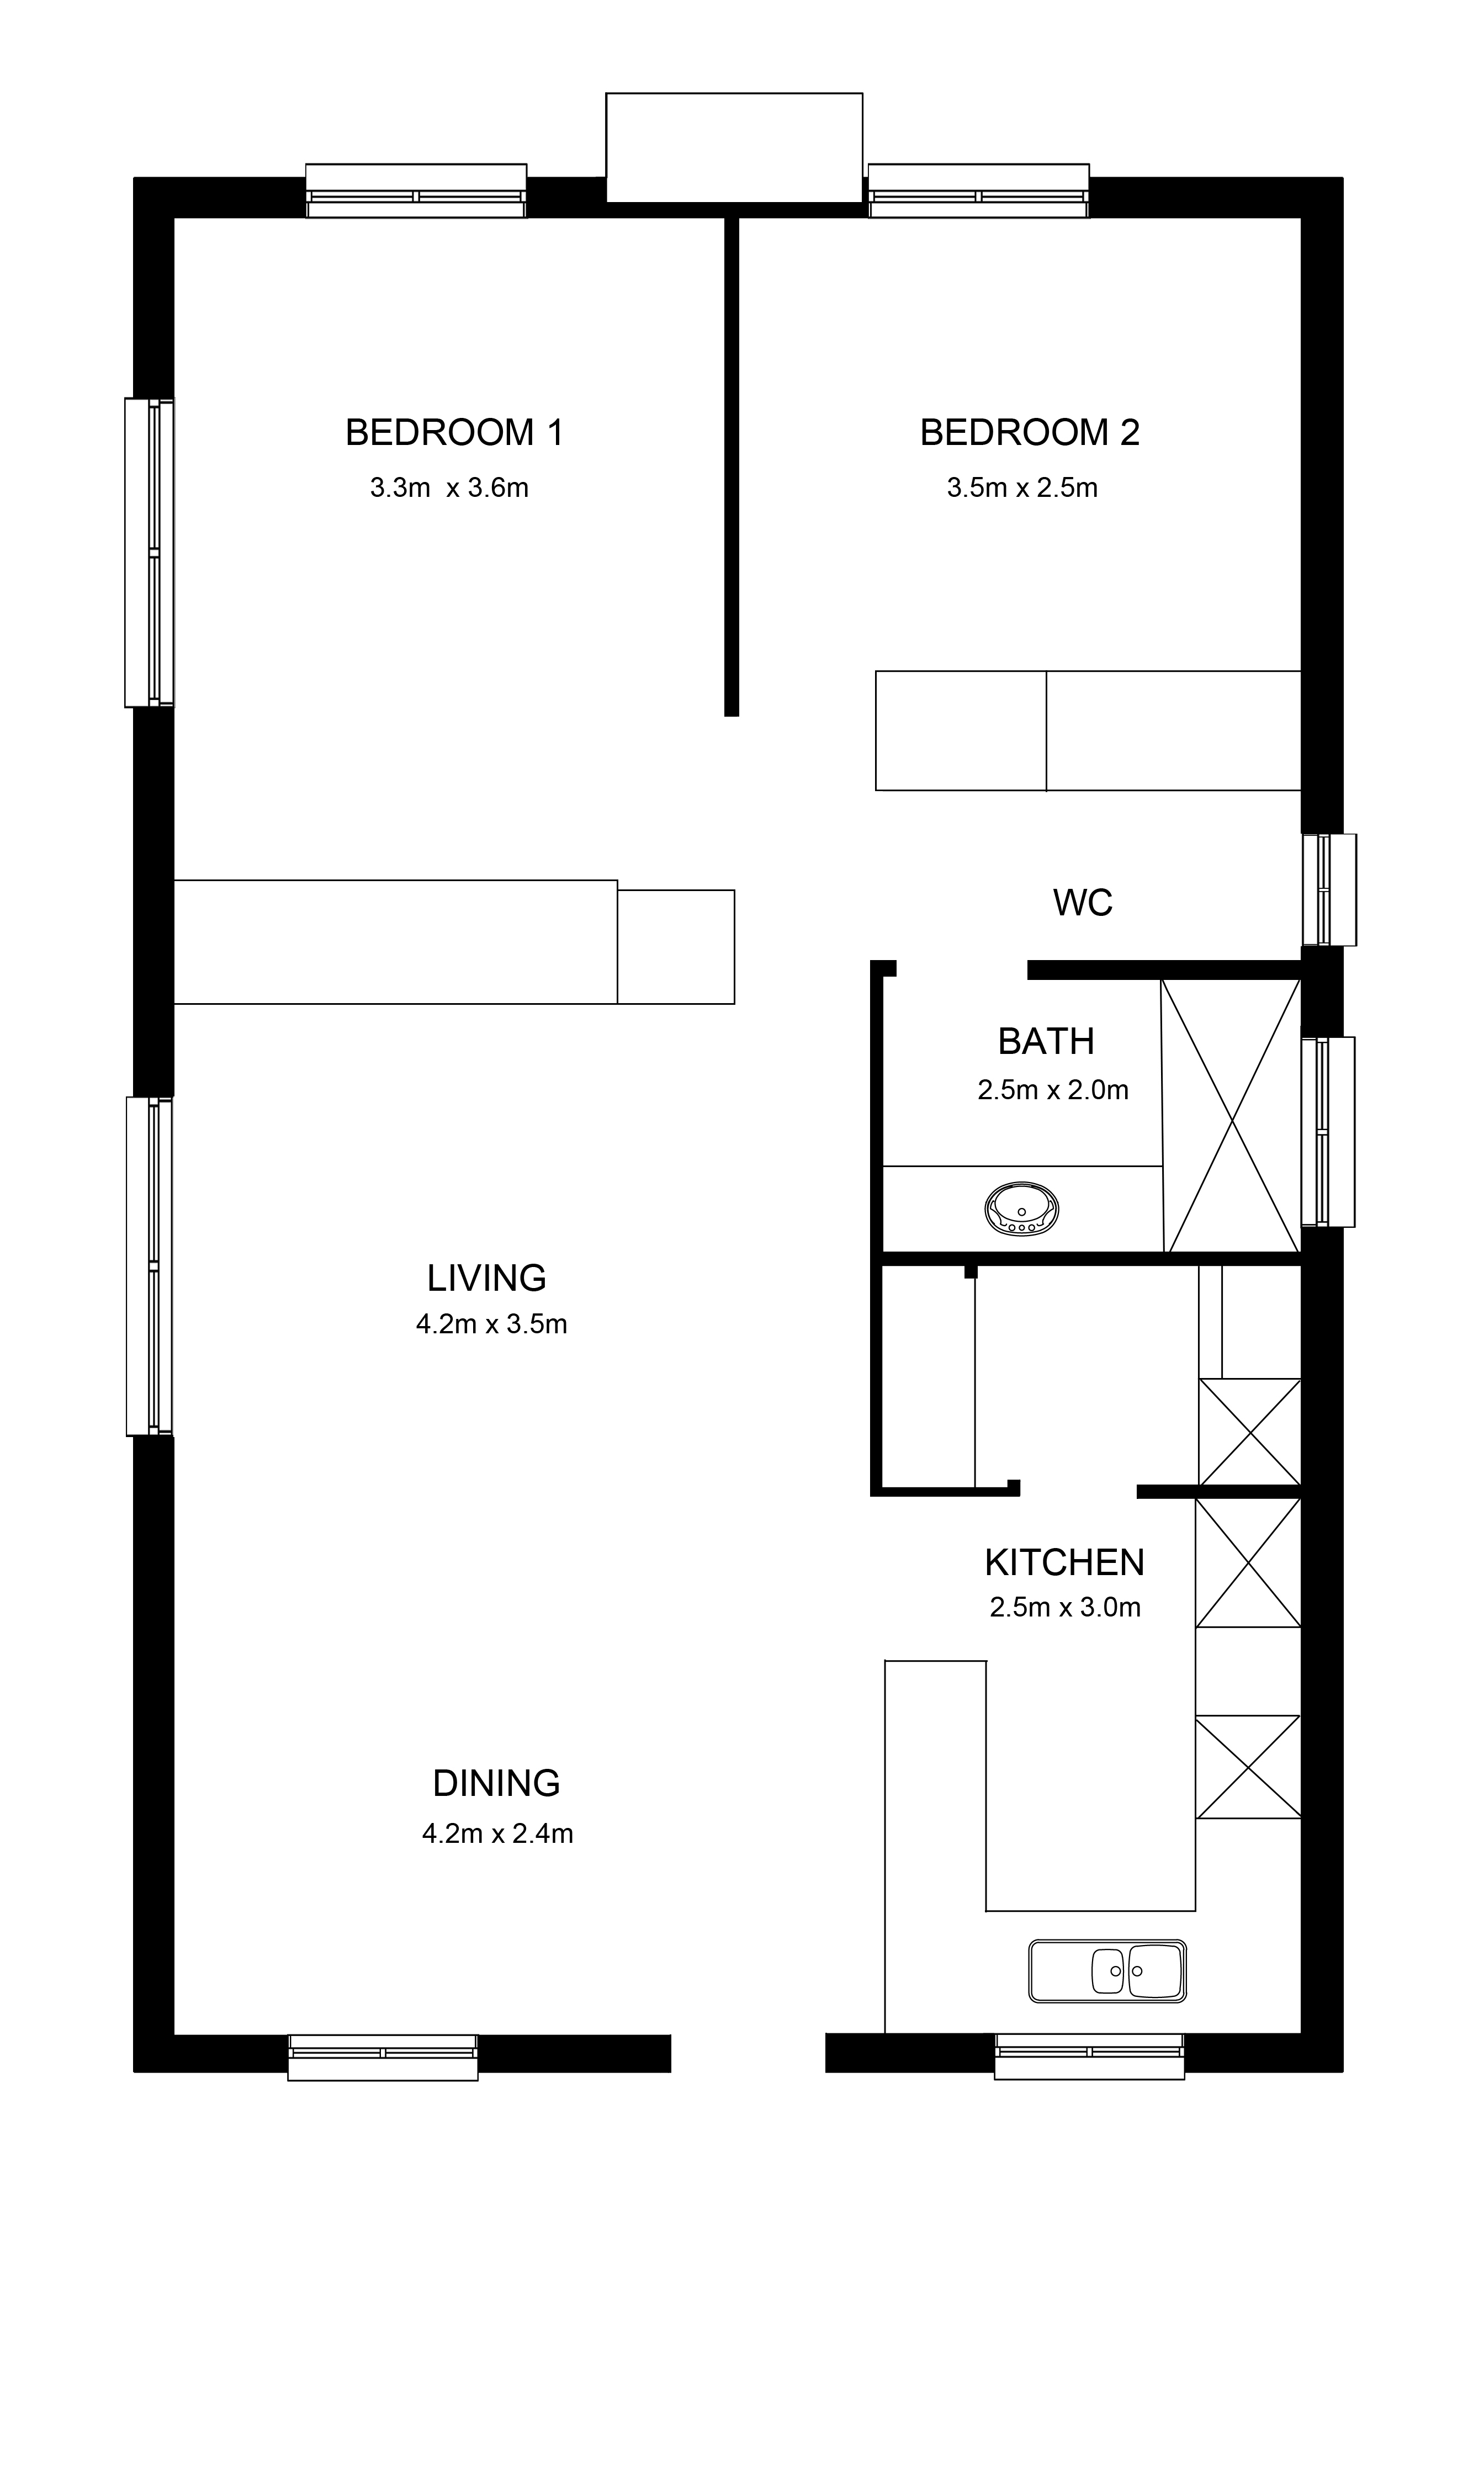 Pine Lake ILU 2x1x1x0 Floorplan